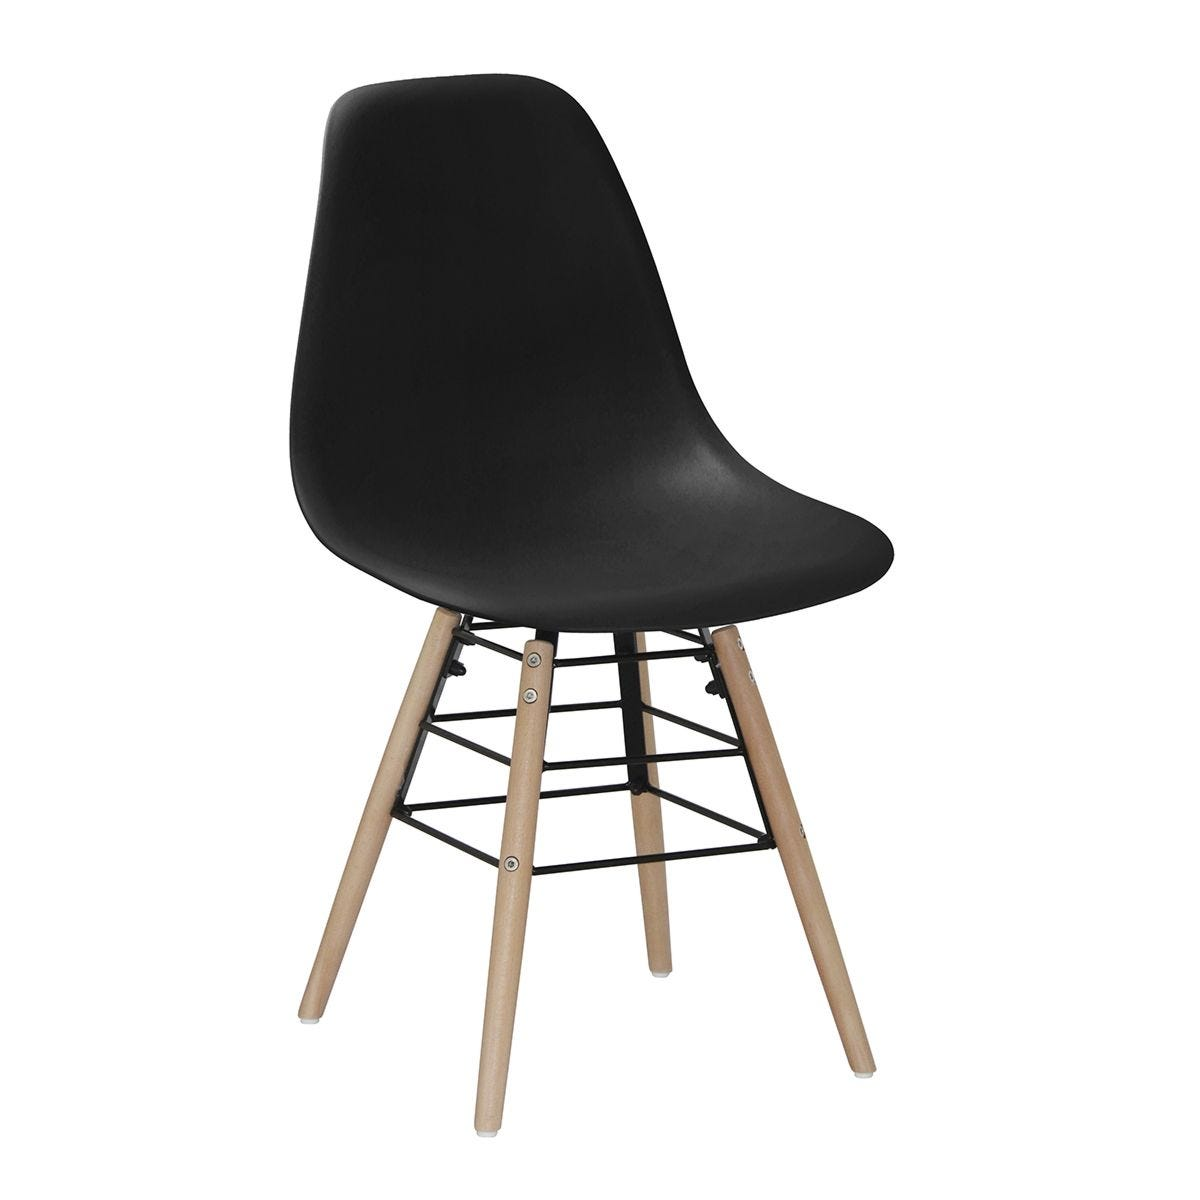 Set Of 4 Lilly Plastic Chairs with Solid Beech Legs - Black